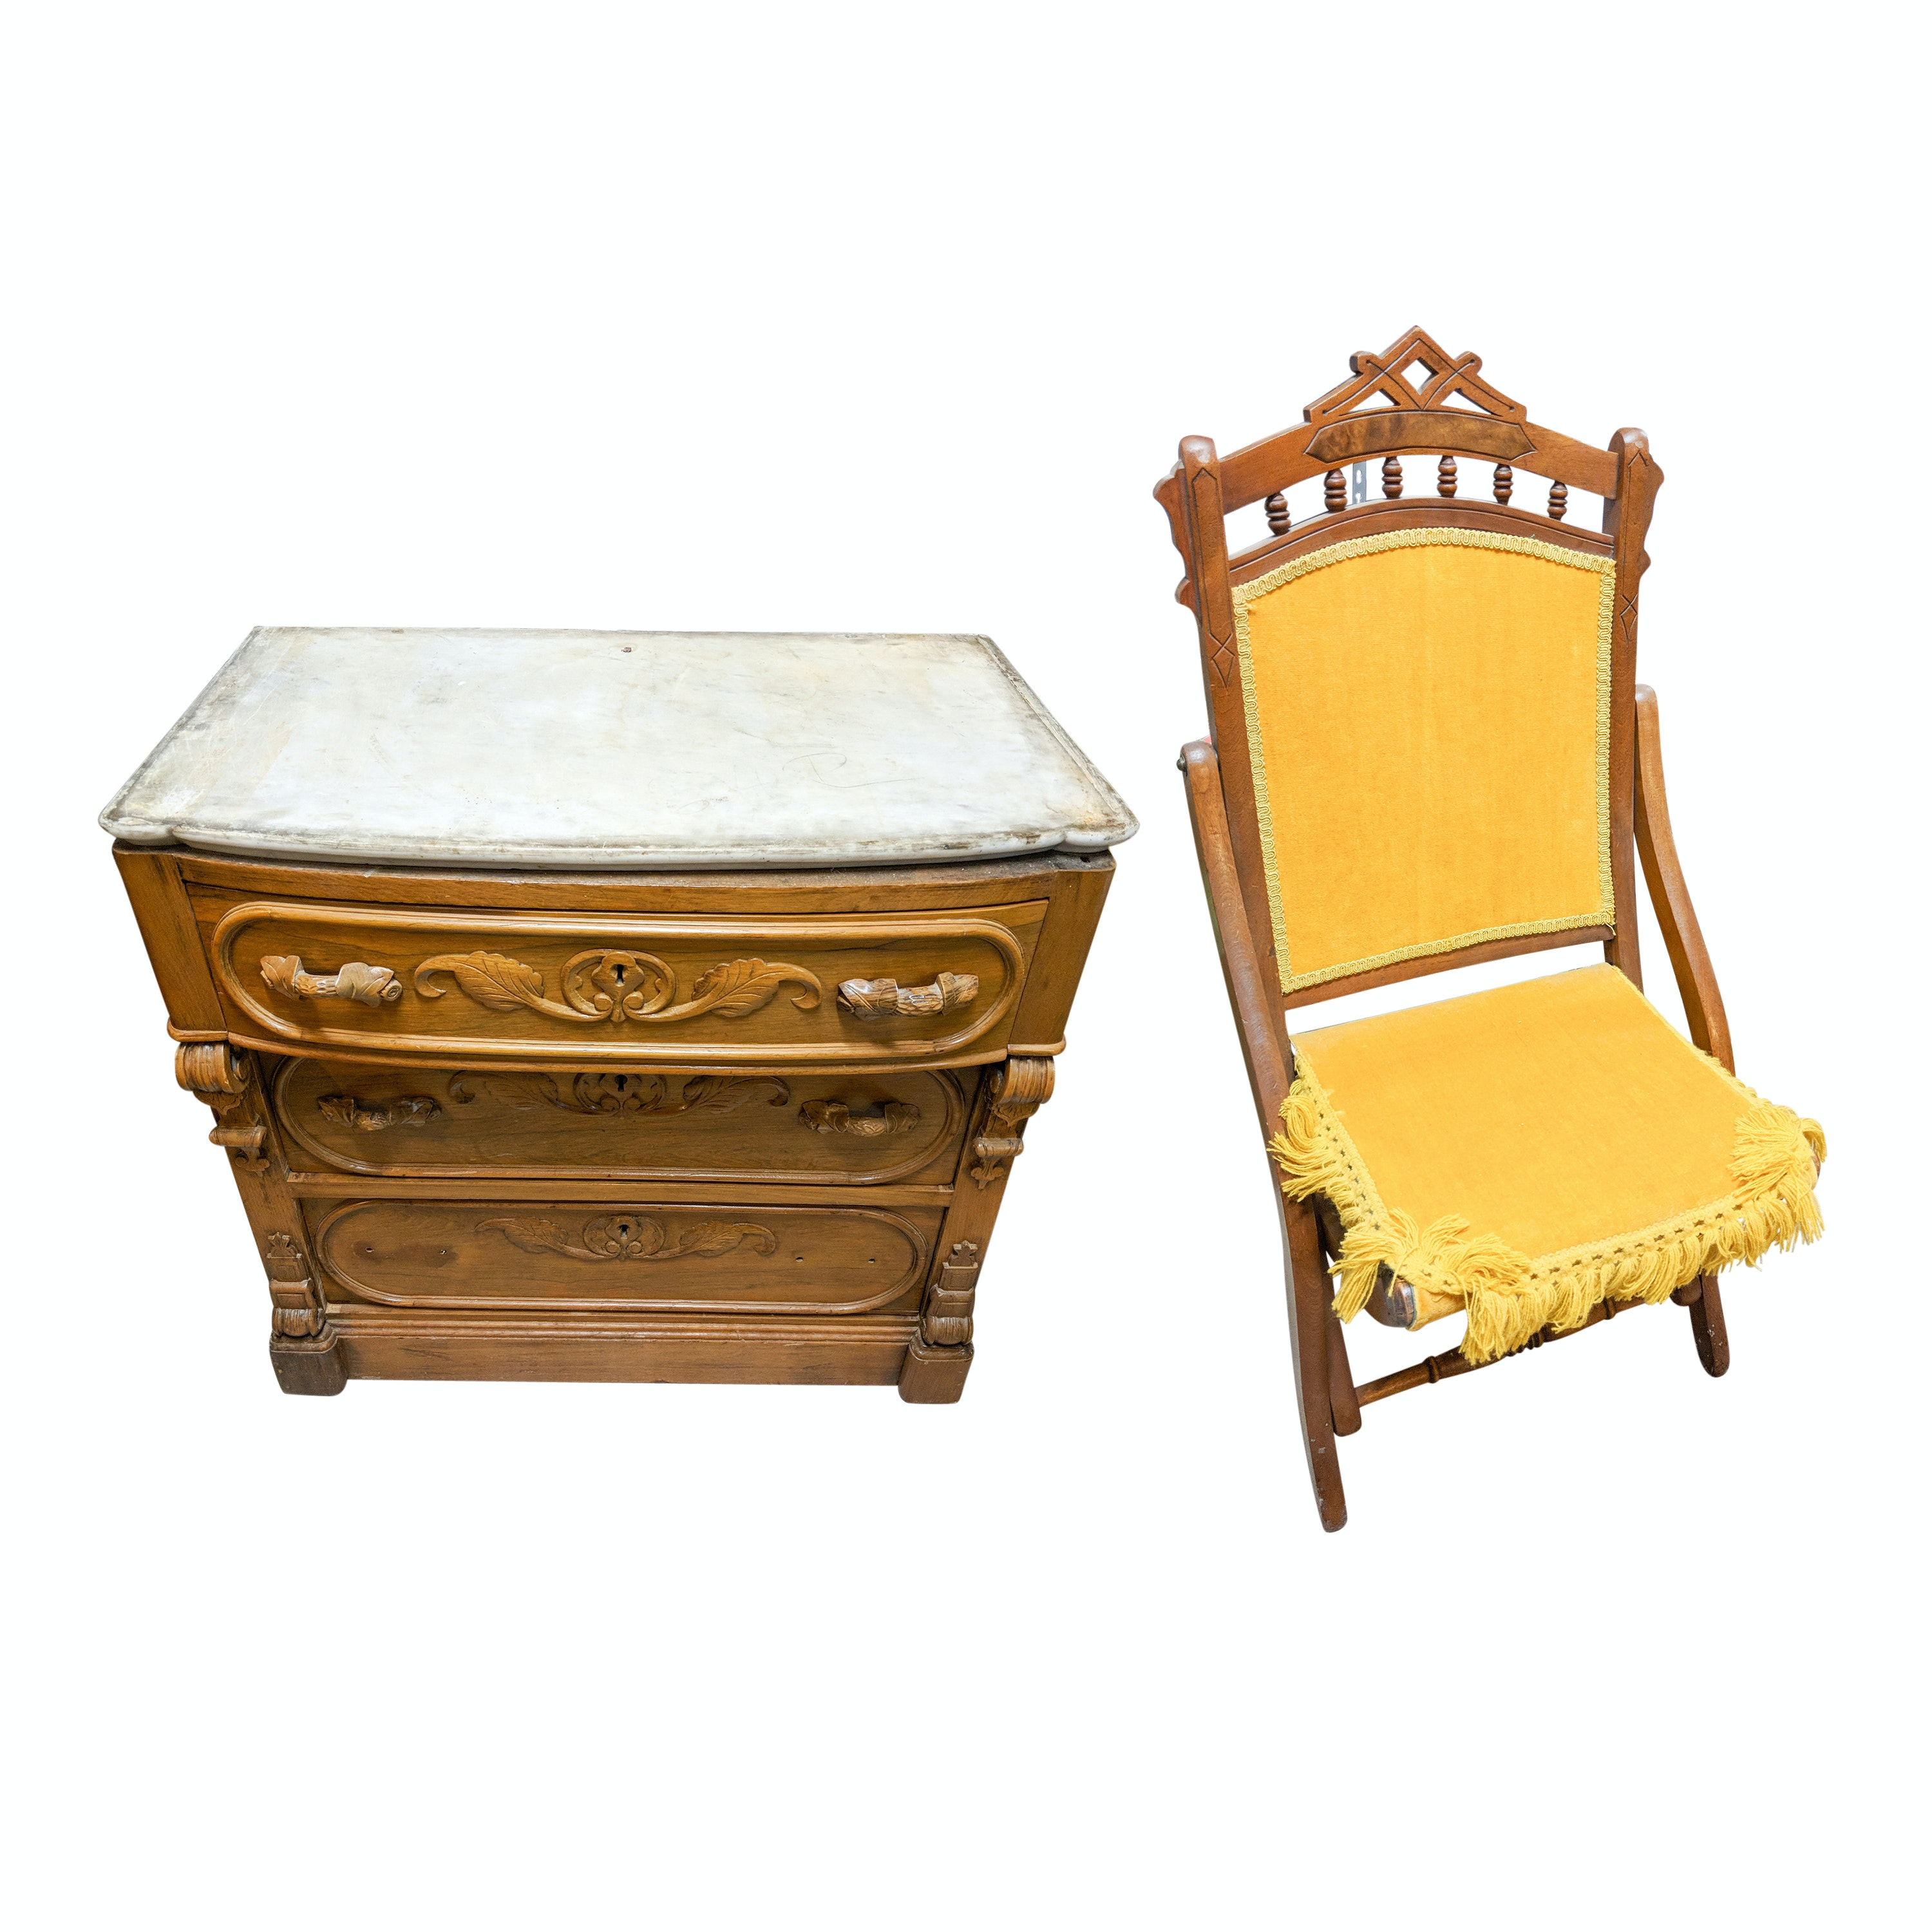 Antique Carved Wood Marble Top Chest and Vintage Carved Wood Folding Chair